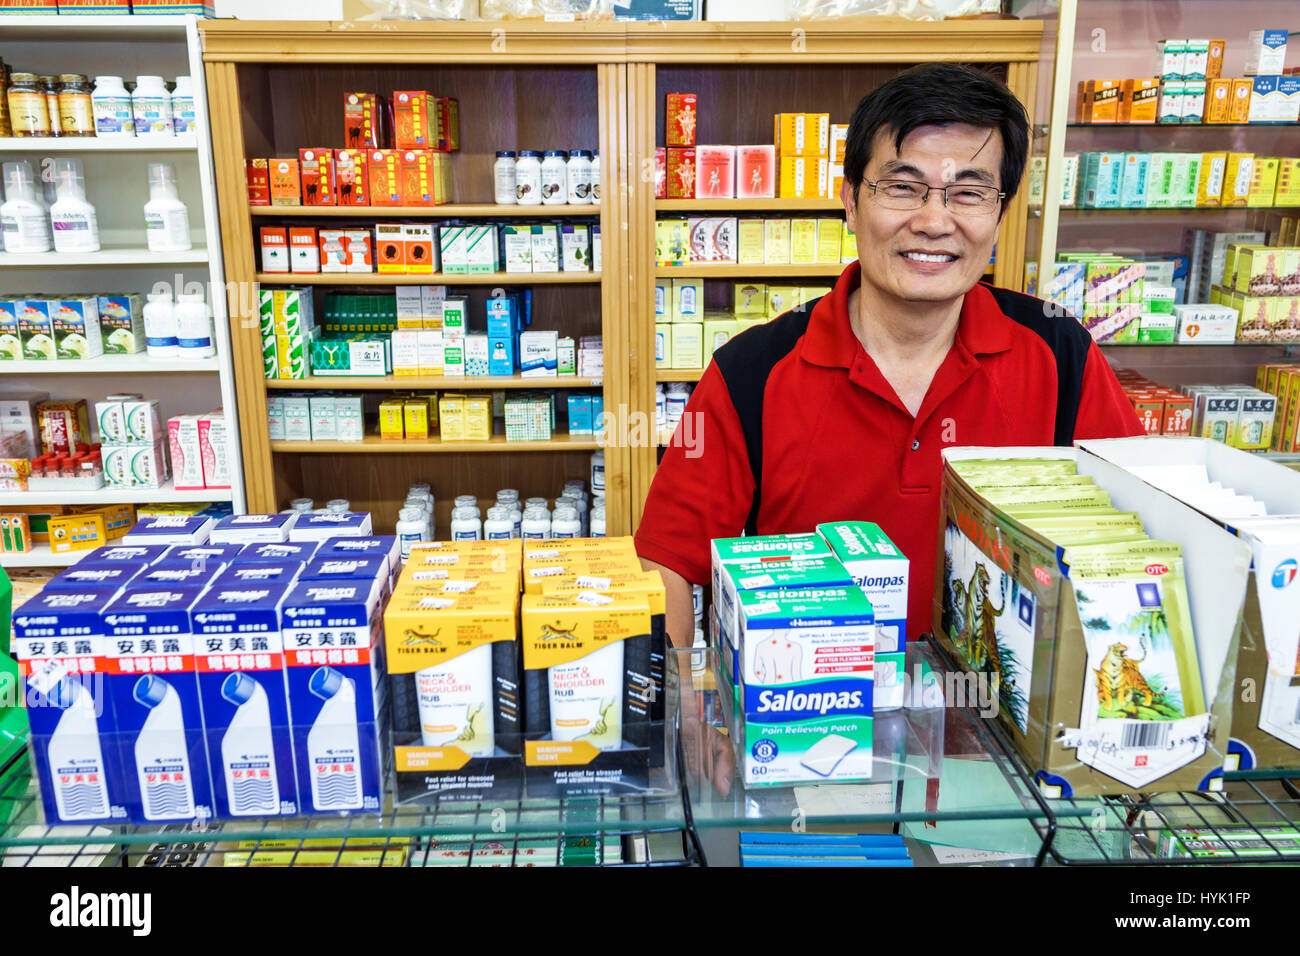 Orlando Chinatown Florida Health Food City health market Oriental alternative medicine pharmacy display Asian man - Stock Image